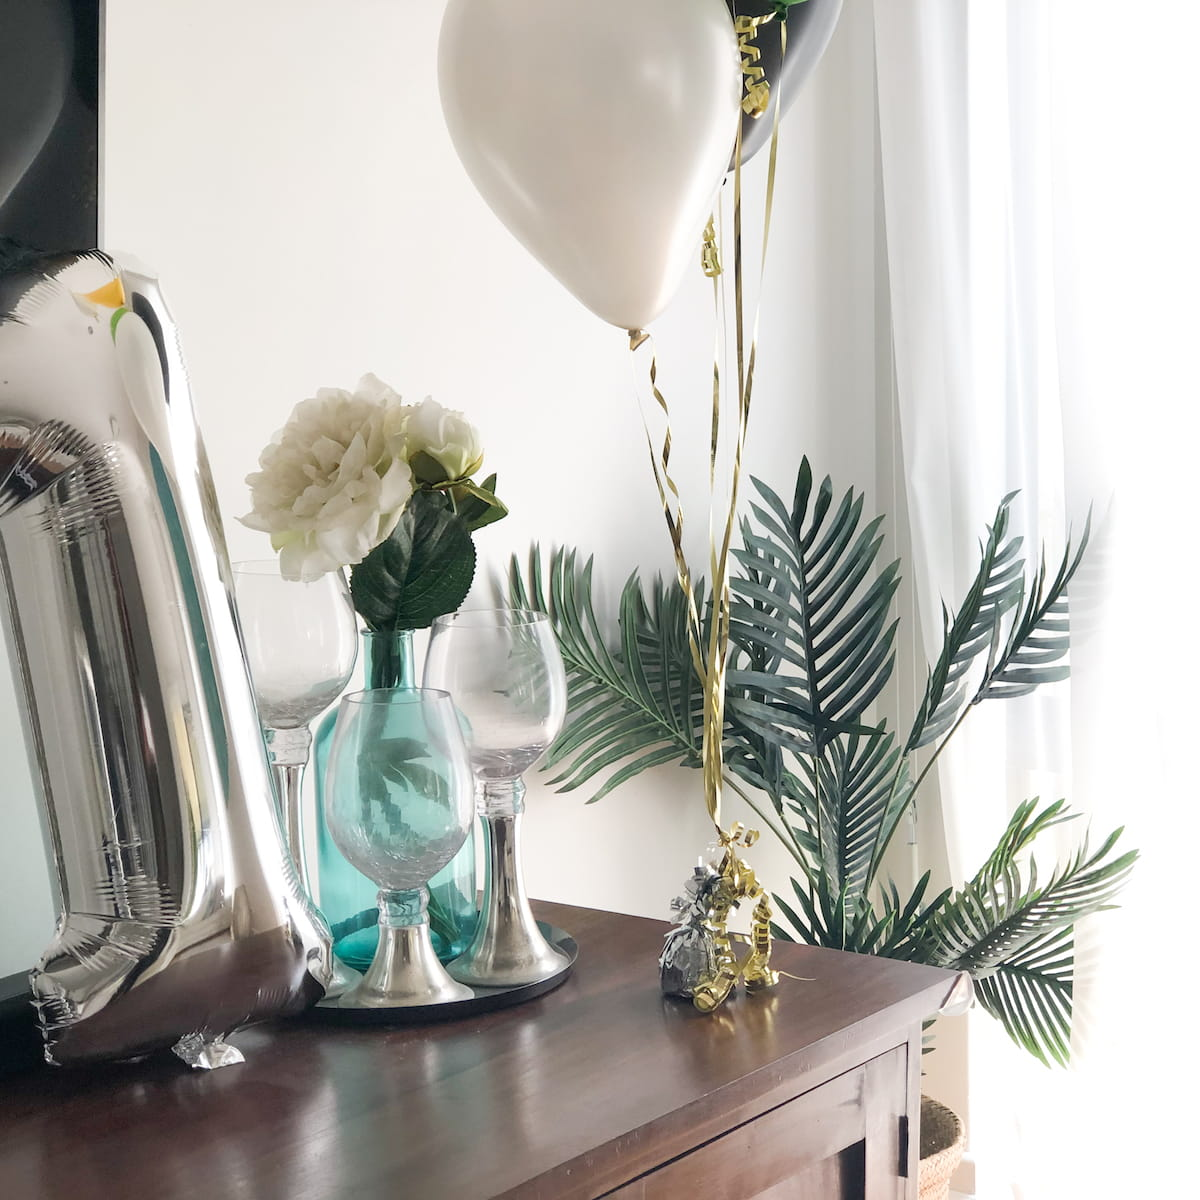 Balloon safari party decor